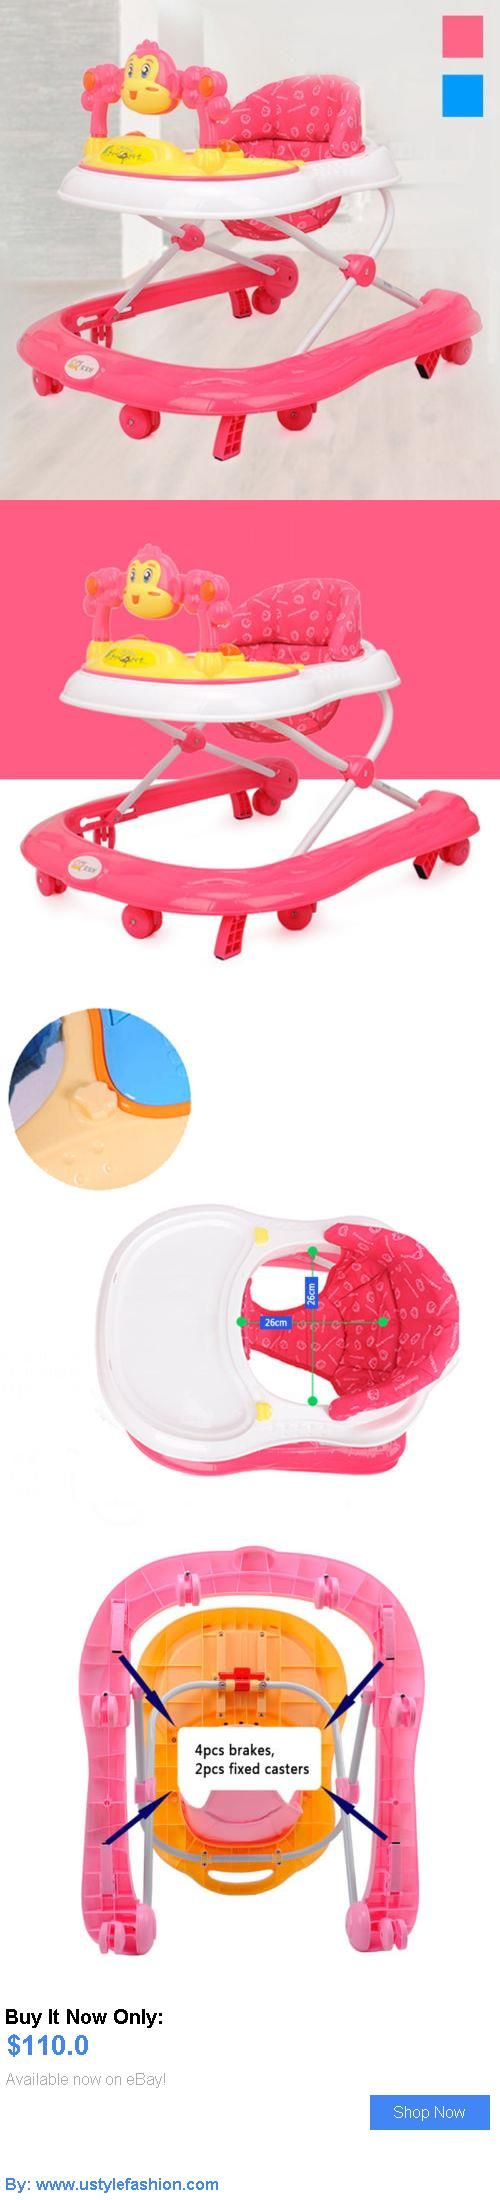 Baby walkers: New Baby Walker Height Adjustable Toddler Musical Safety Learning Assistant Toys BUY IT NOW ONLY: $110.0 #ustylefashionBabywalkers OR #ustylefashion